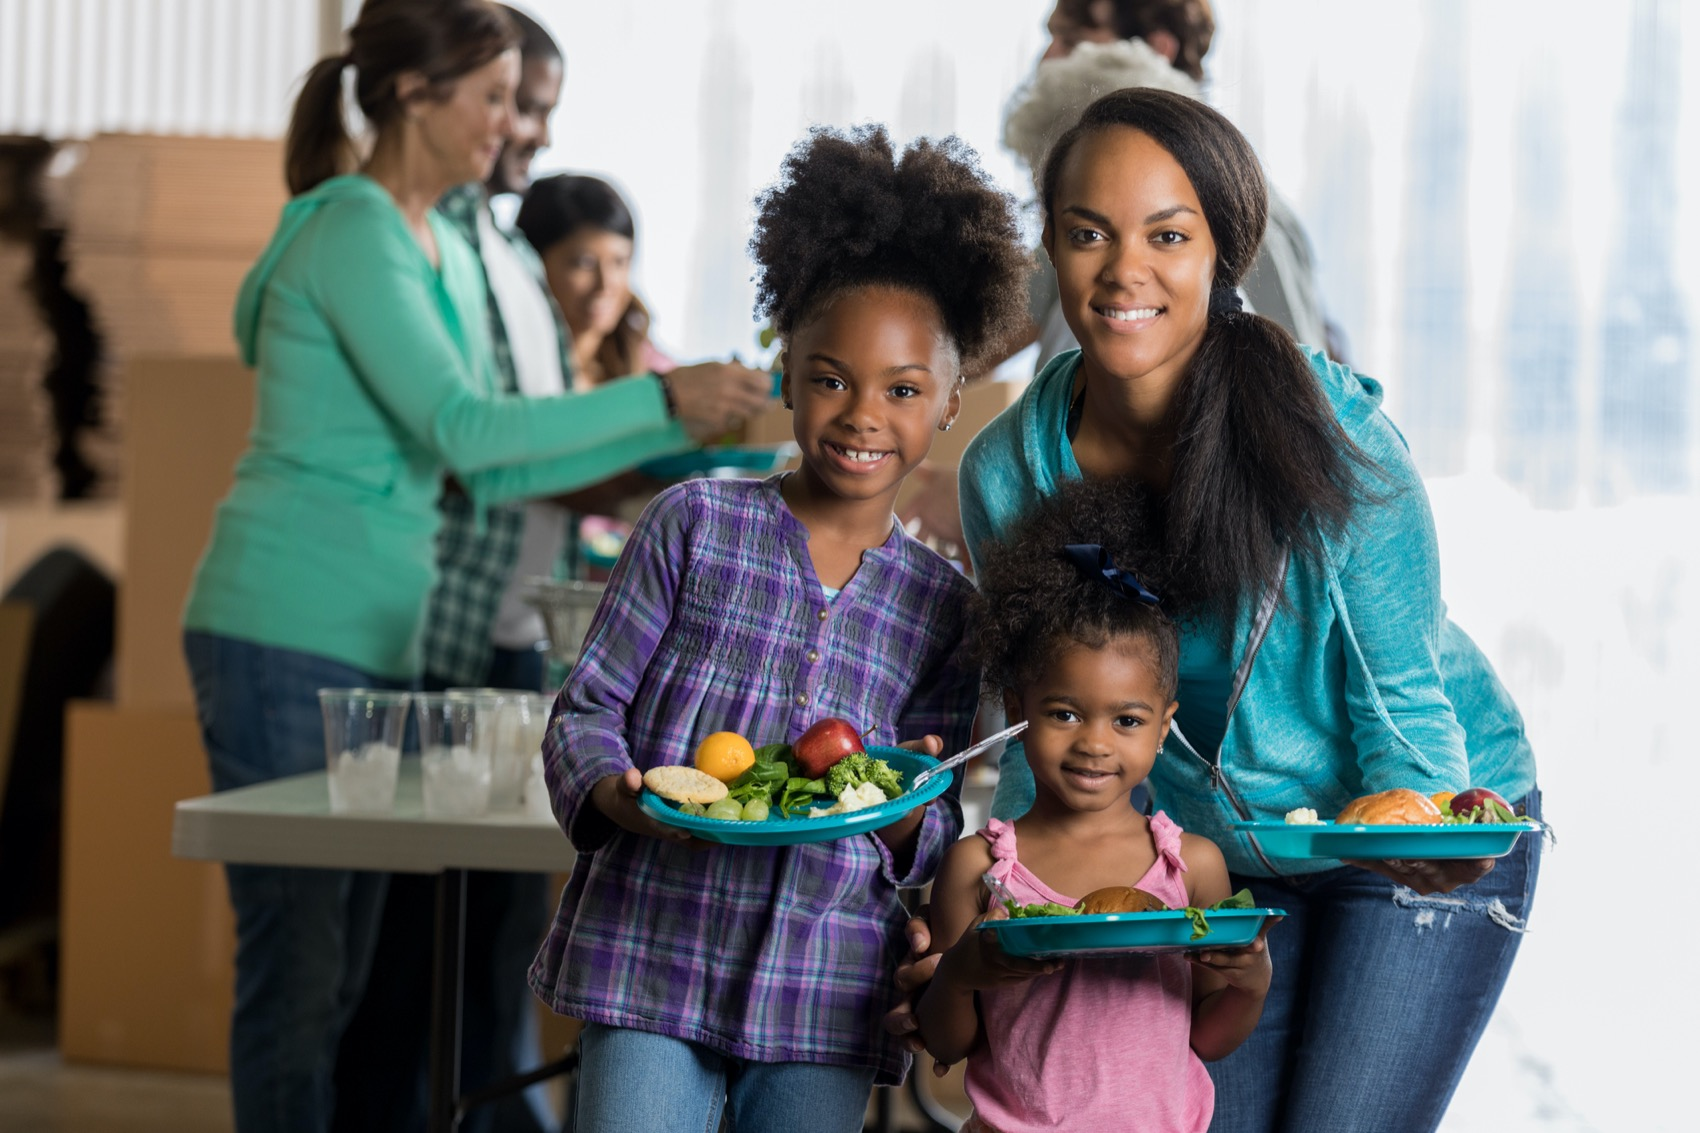 Beautiful young African American mom and her elementary and preschool age daughters hold plates of healthy food from a soup kitchen. Volunteers are serving in the background.